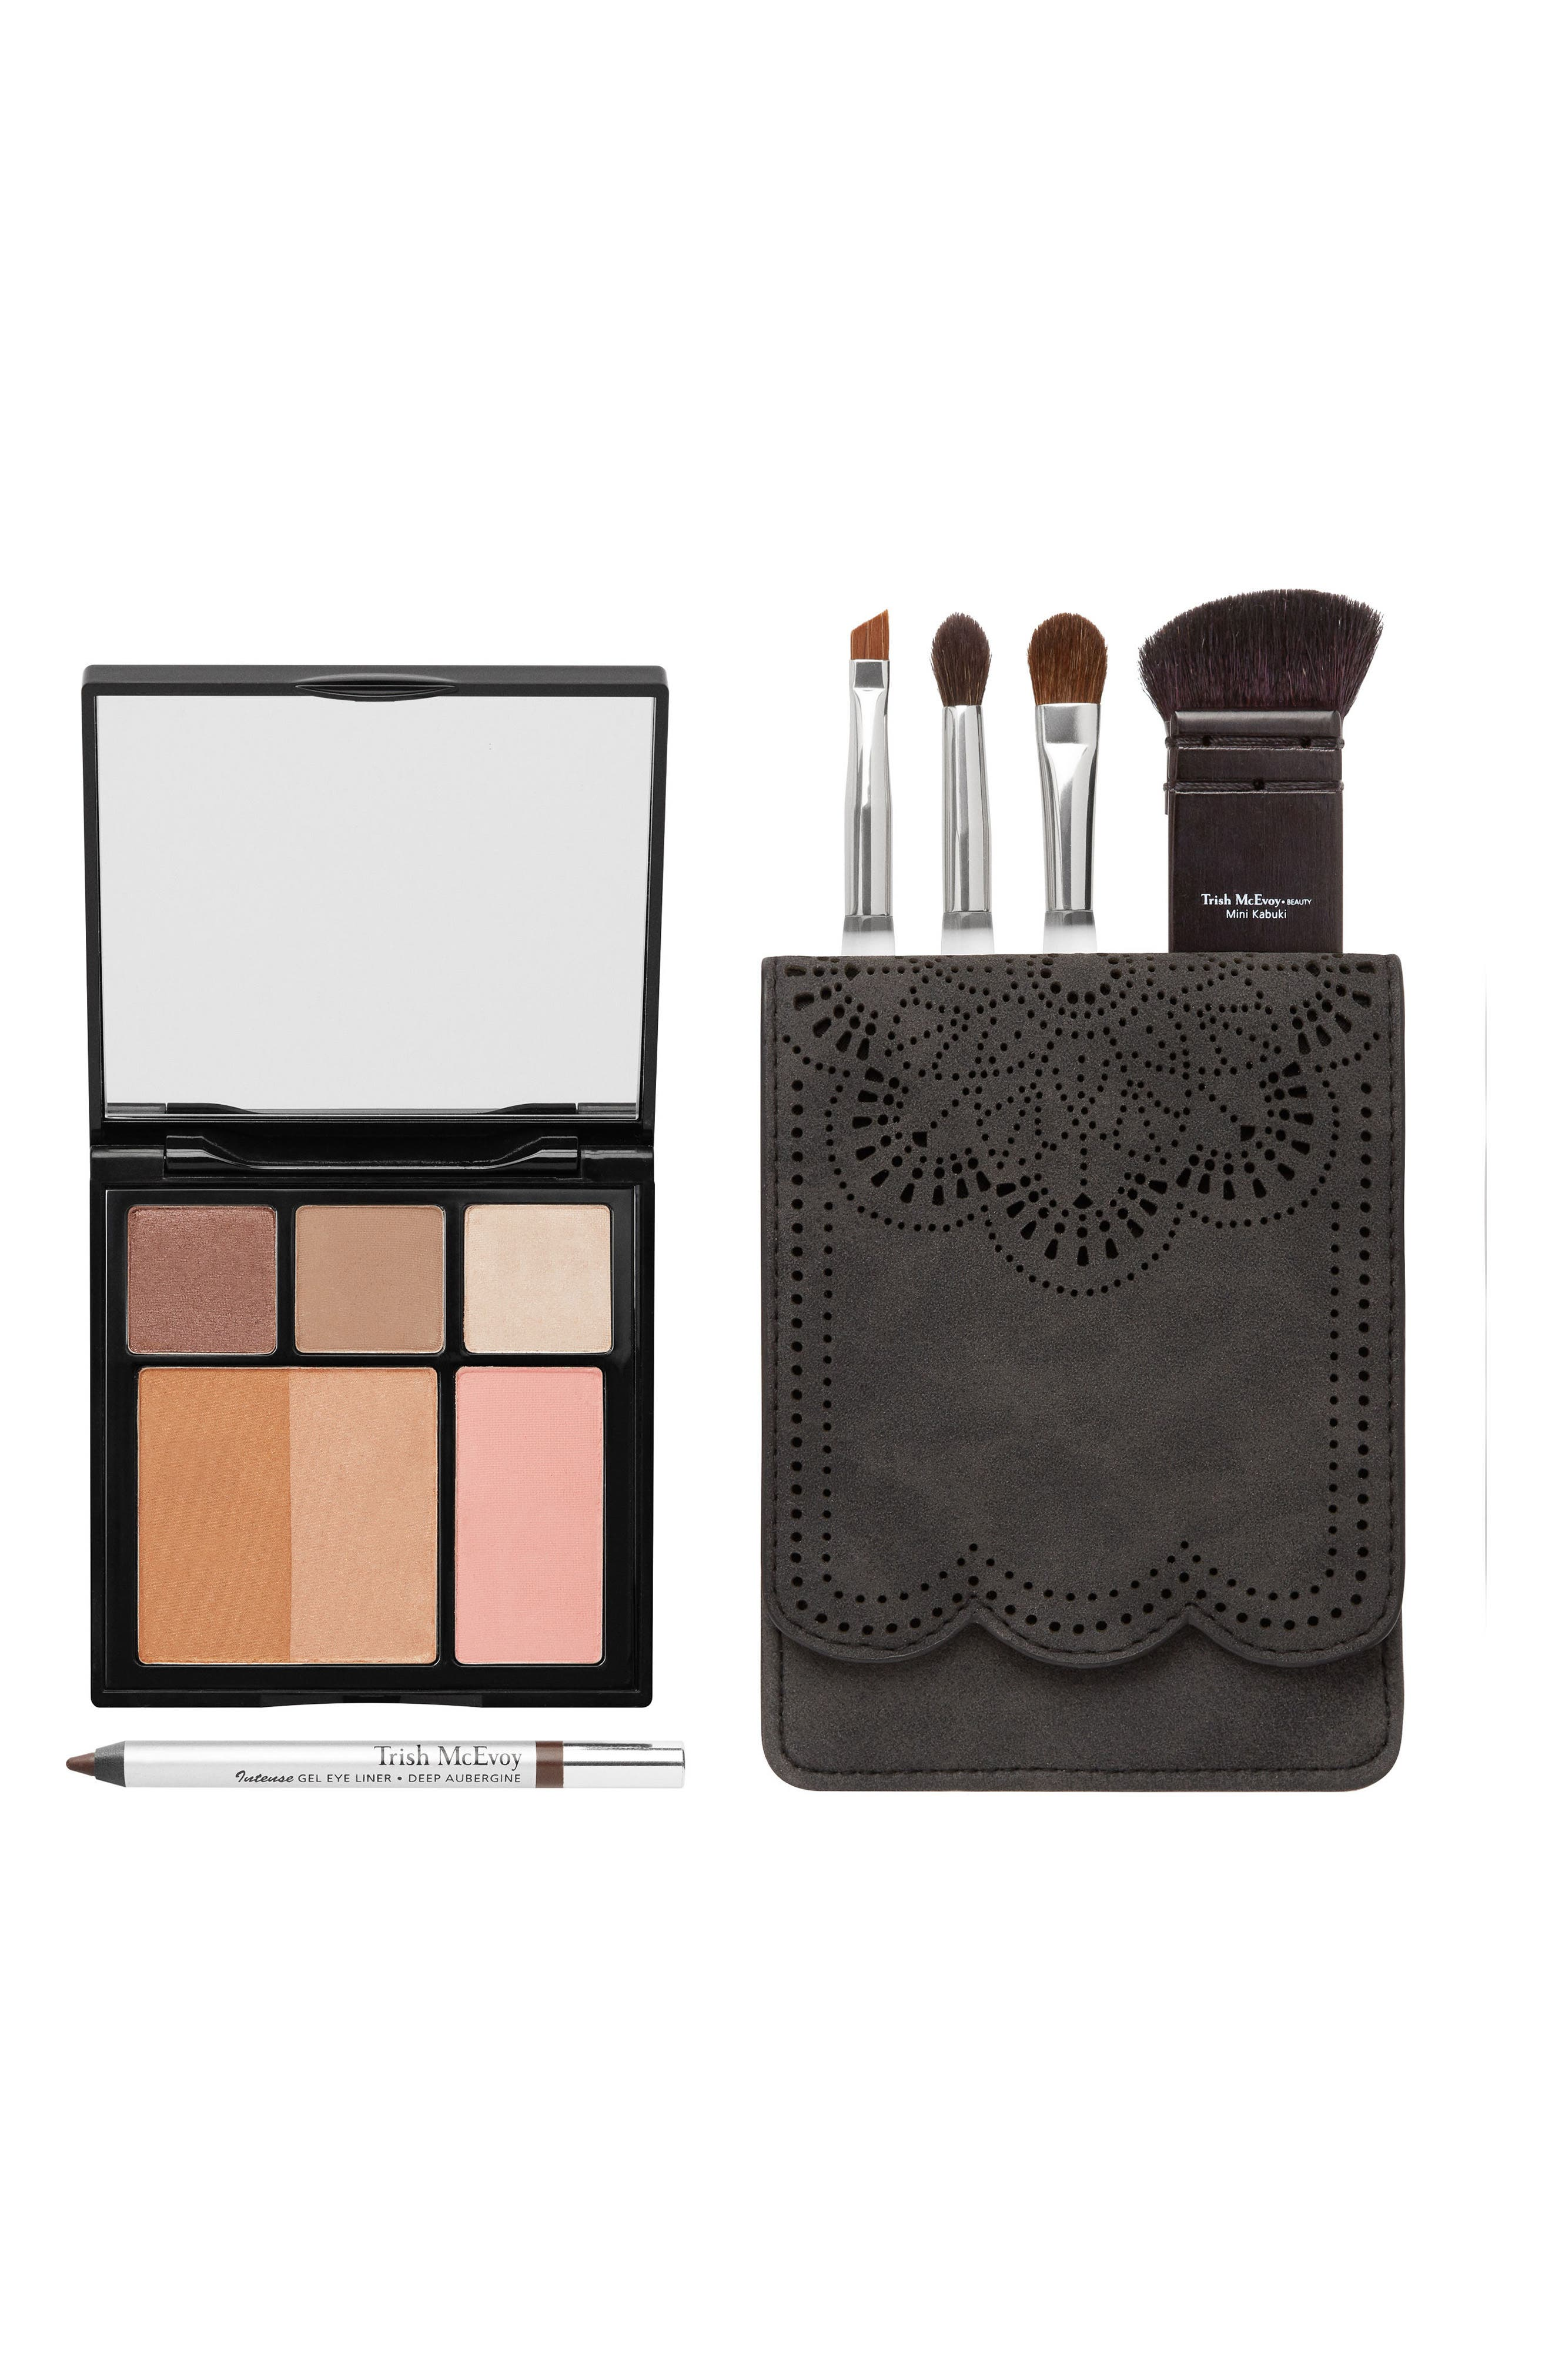 Trish McEvoy Confidence to Go Palette (Limited Edition)